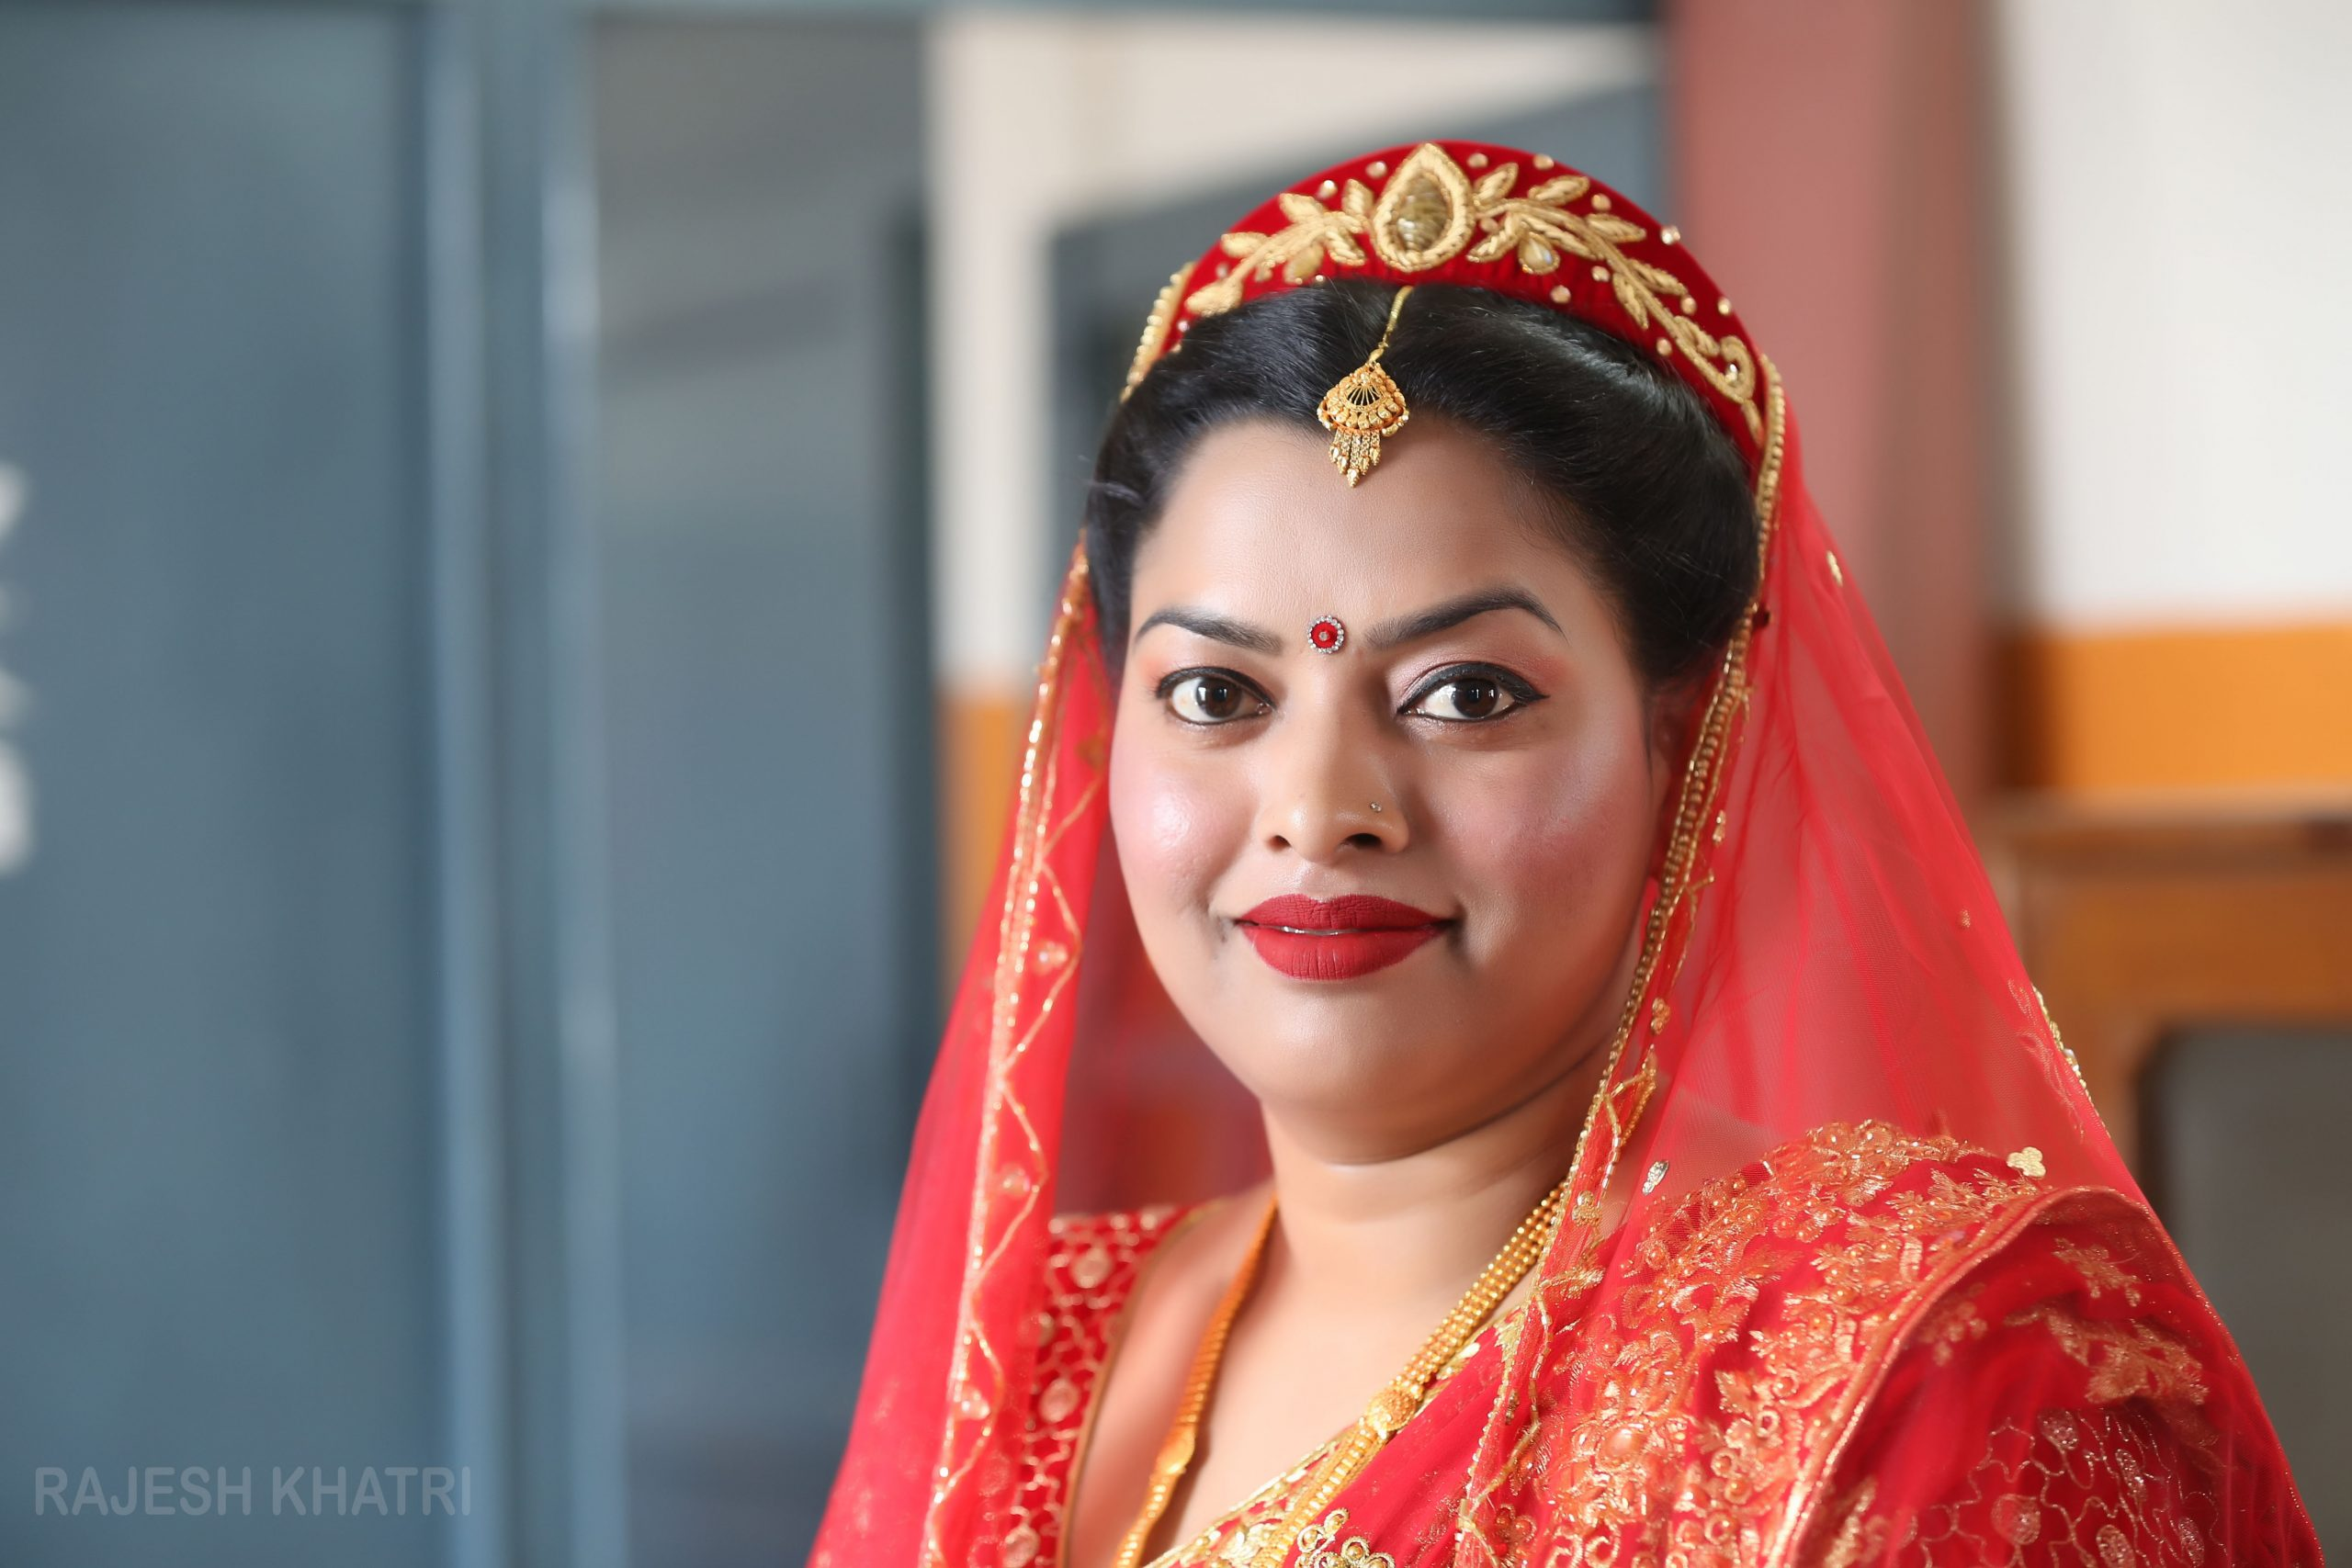 nepali wedding image, best of weeding image, nepali marriage, vivah, nepali vivah